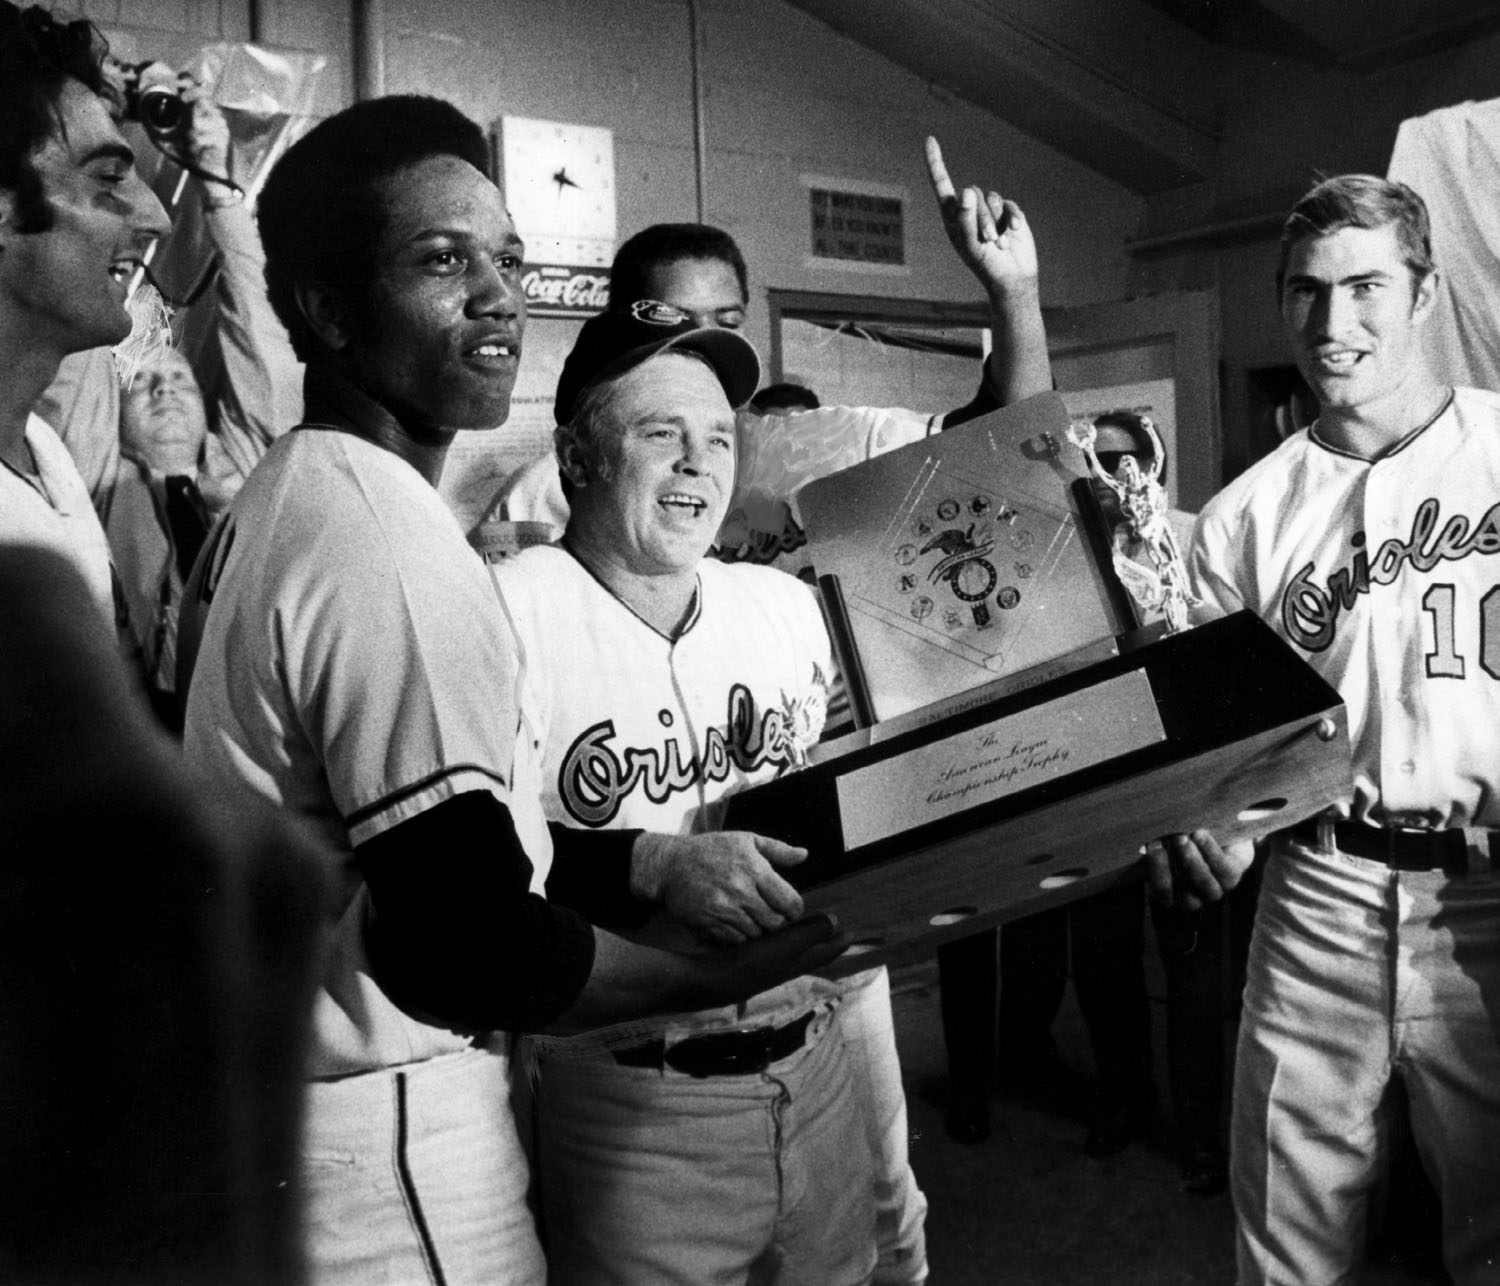 Remembering former Orioles manager Earl Weaver